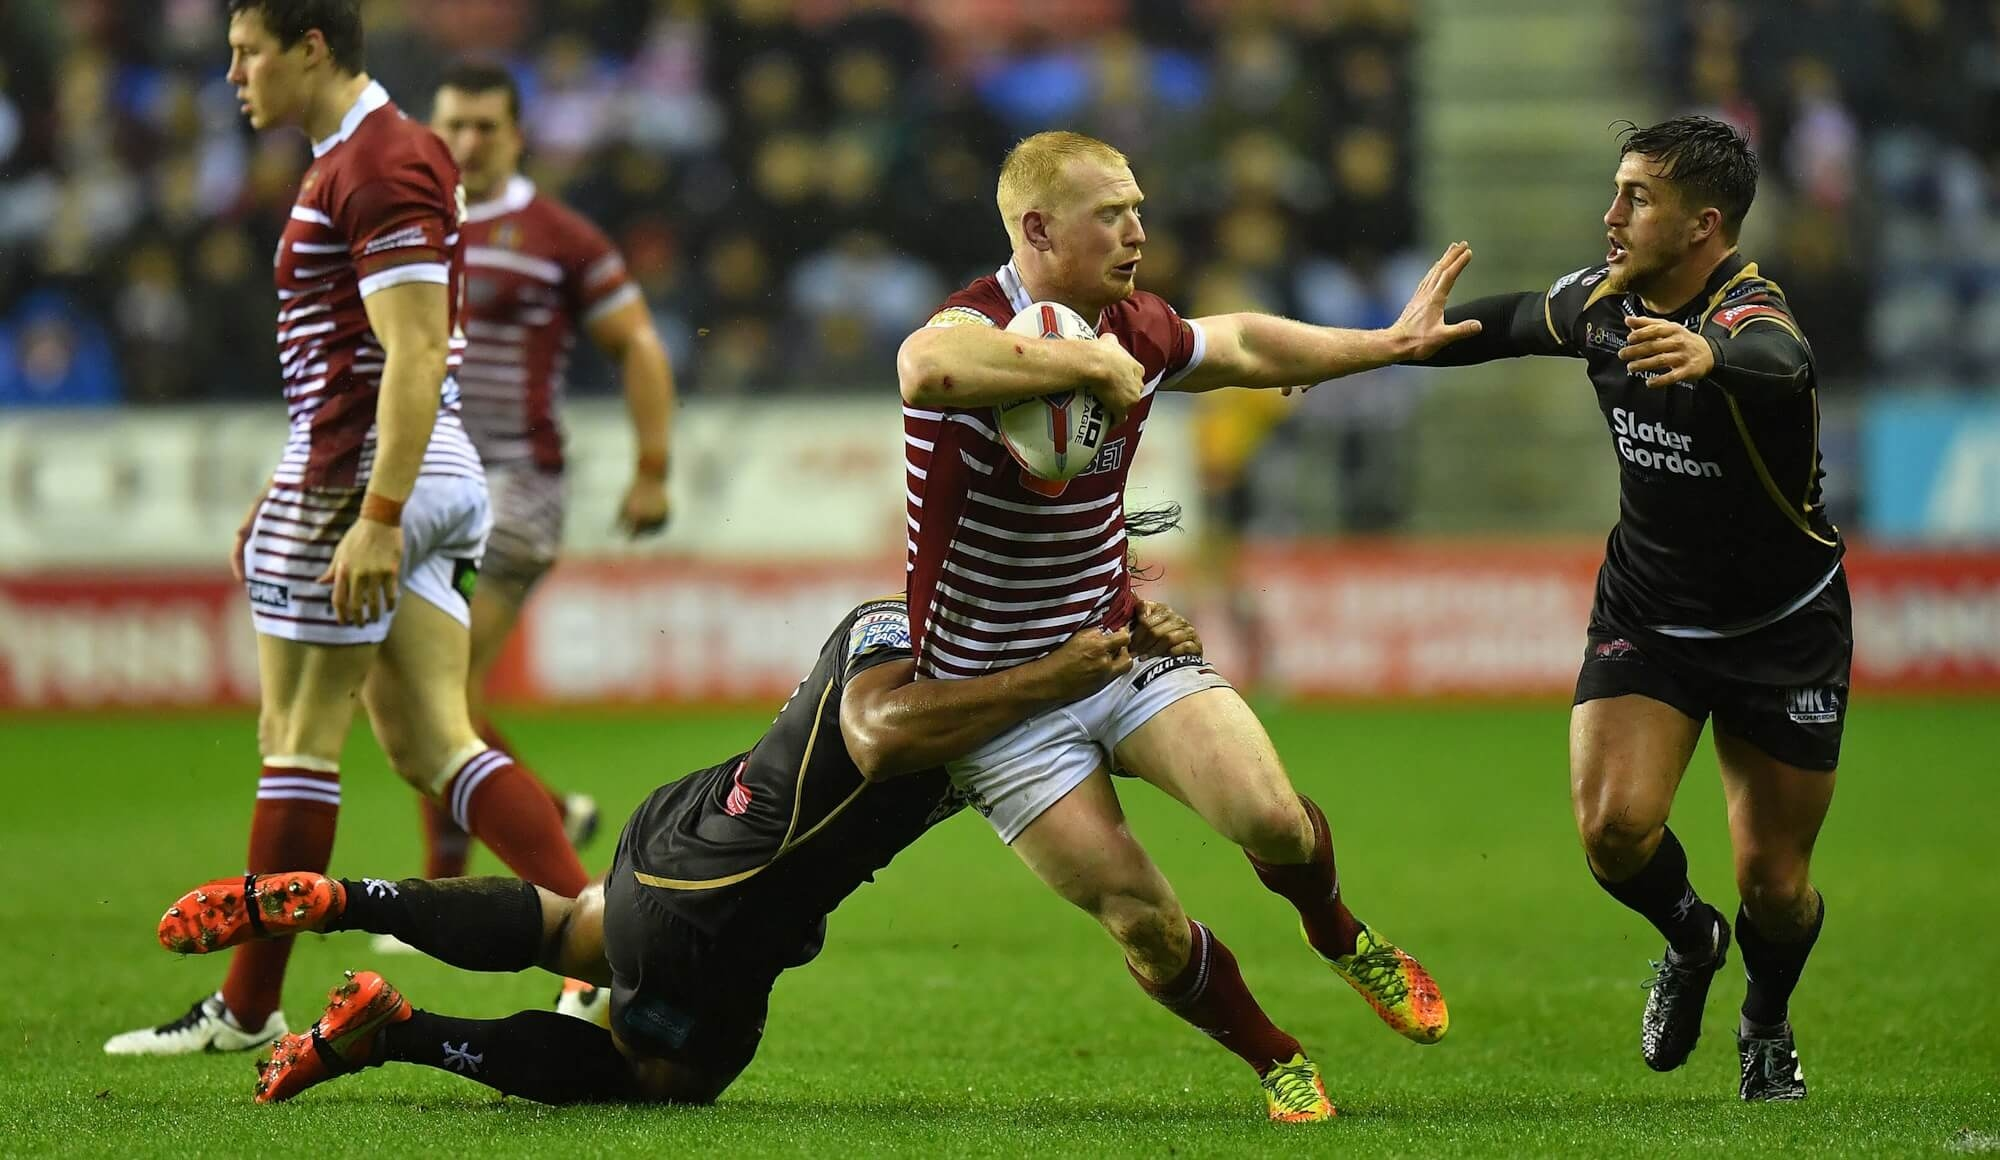 Wigan 20 Leigh 0